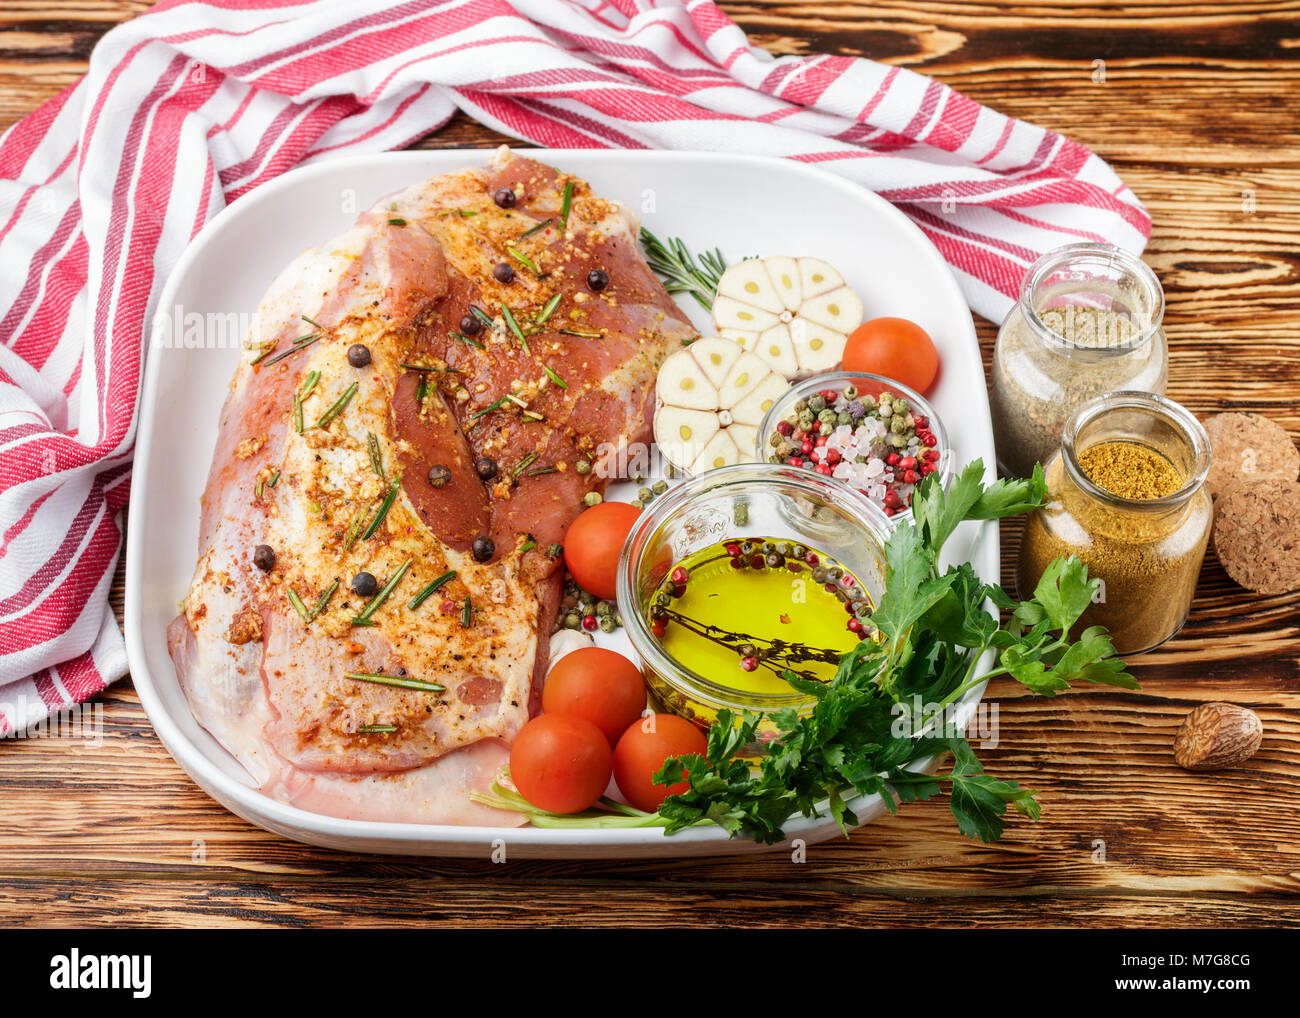 Fresh raw meat. Lamb with spices - rosemary, juniper, garlic and tomatoes in a white ceramic form on a wooden table. - Stock Image